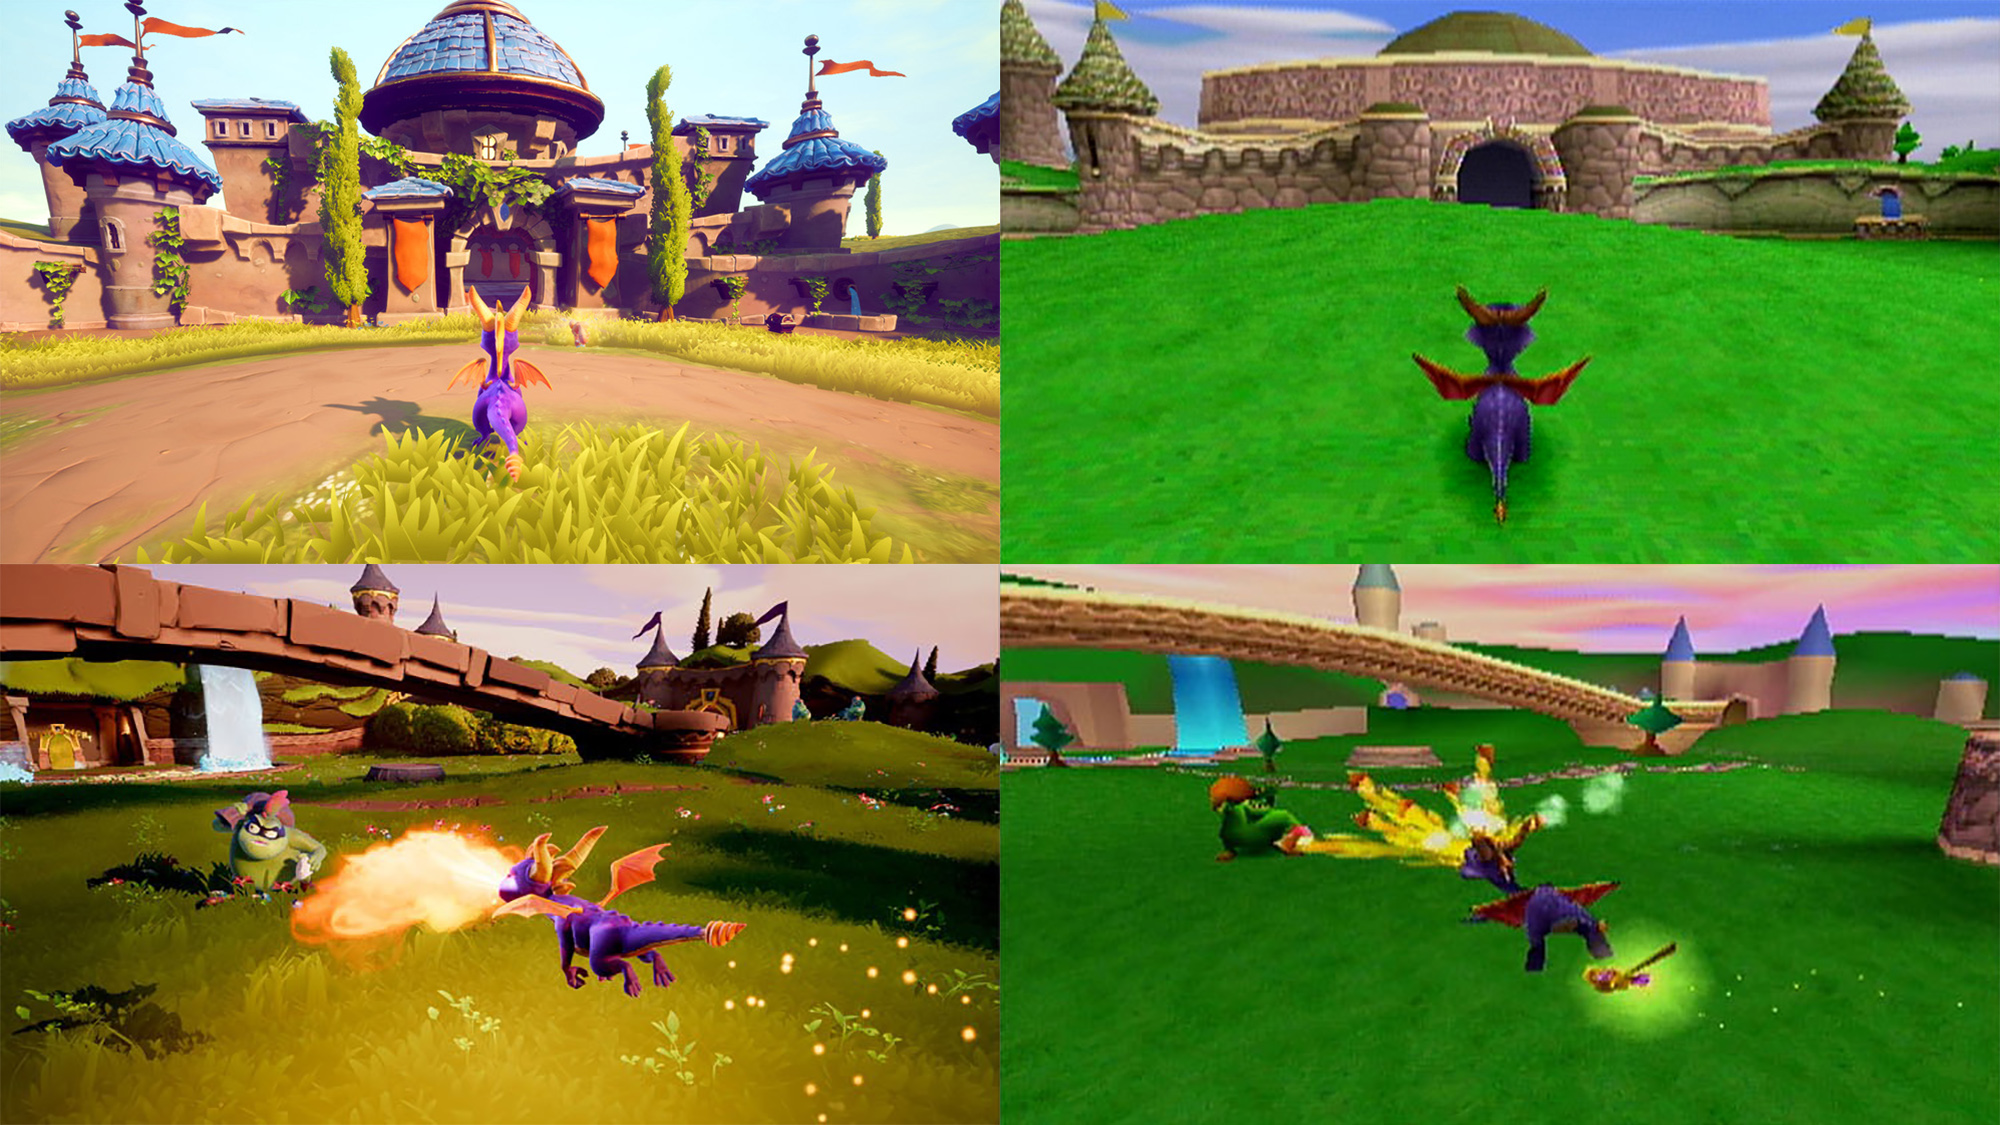 Remastered Spyro Trilogy